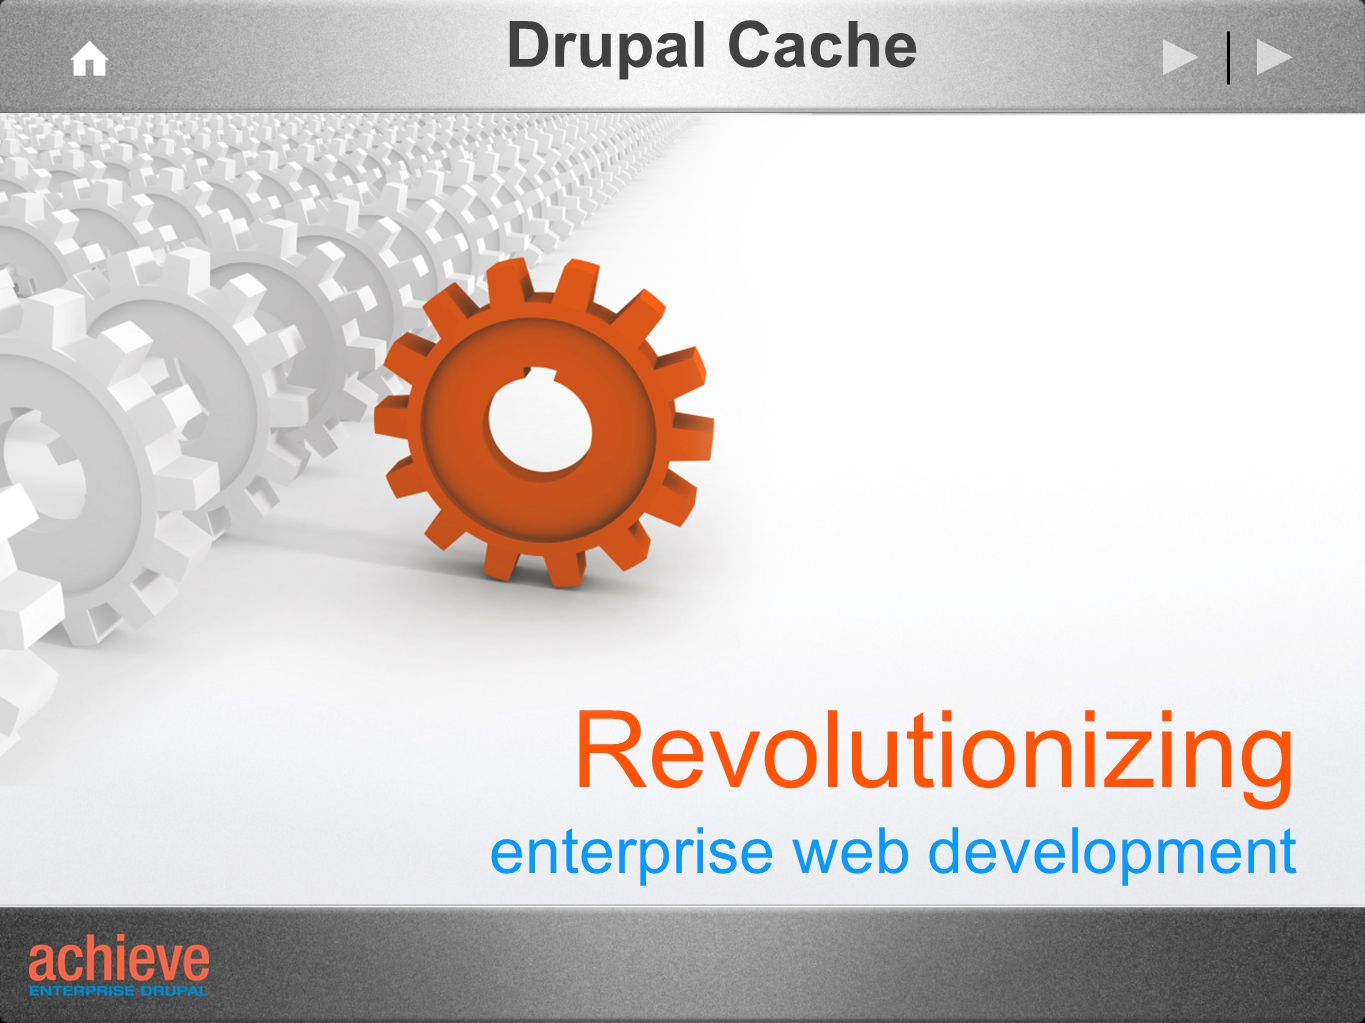 Revolutionizing enterprise web development Drupal Cache